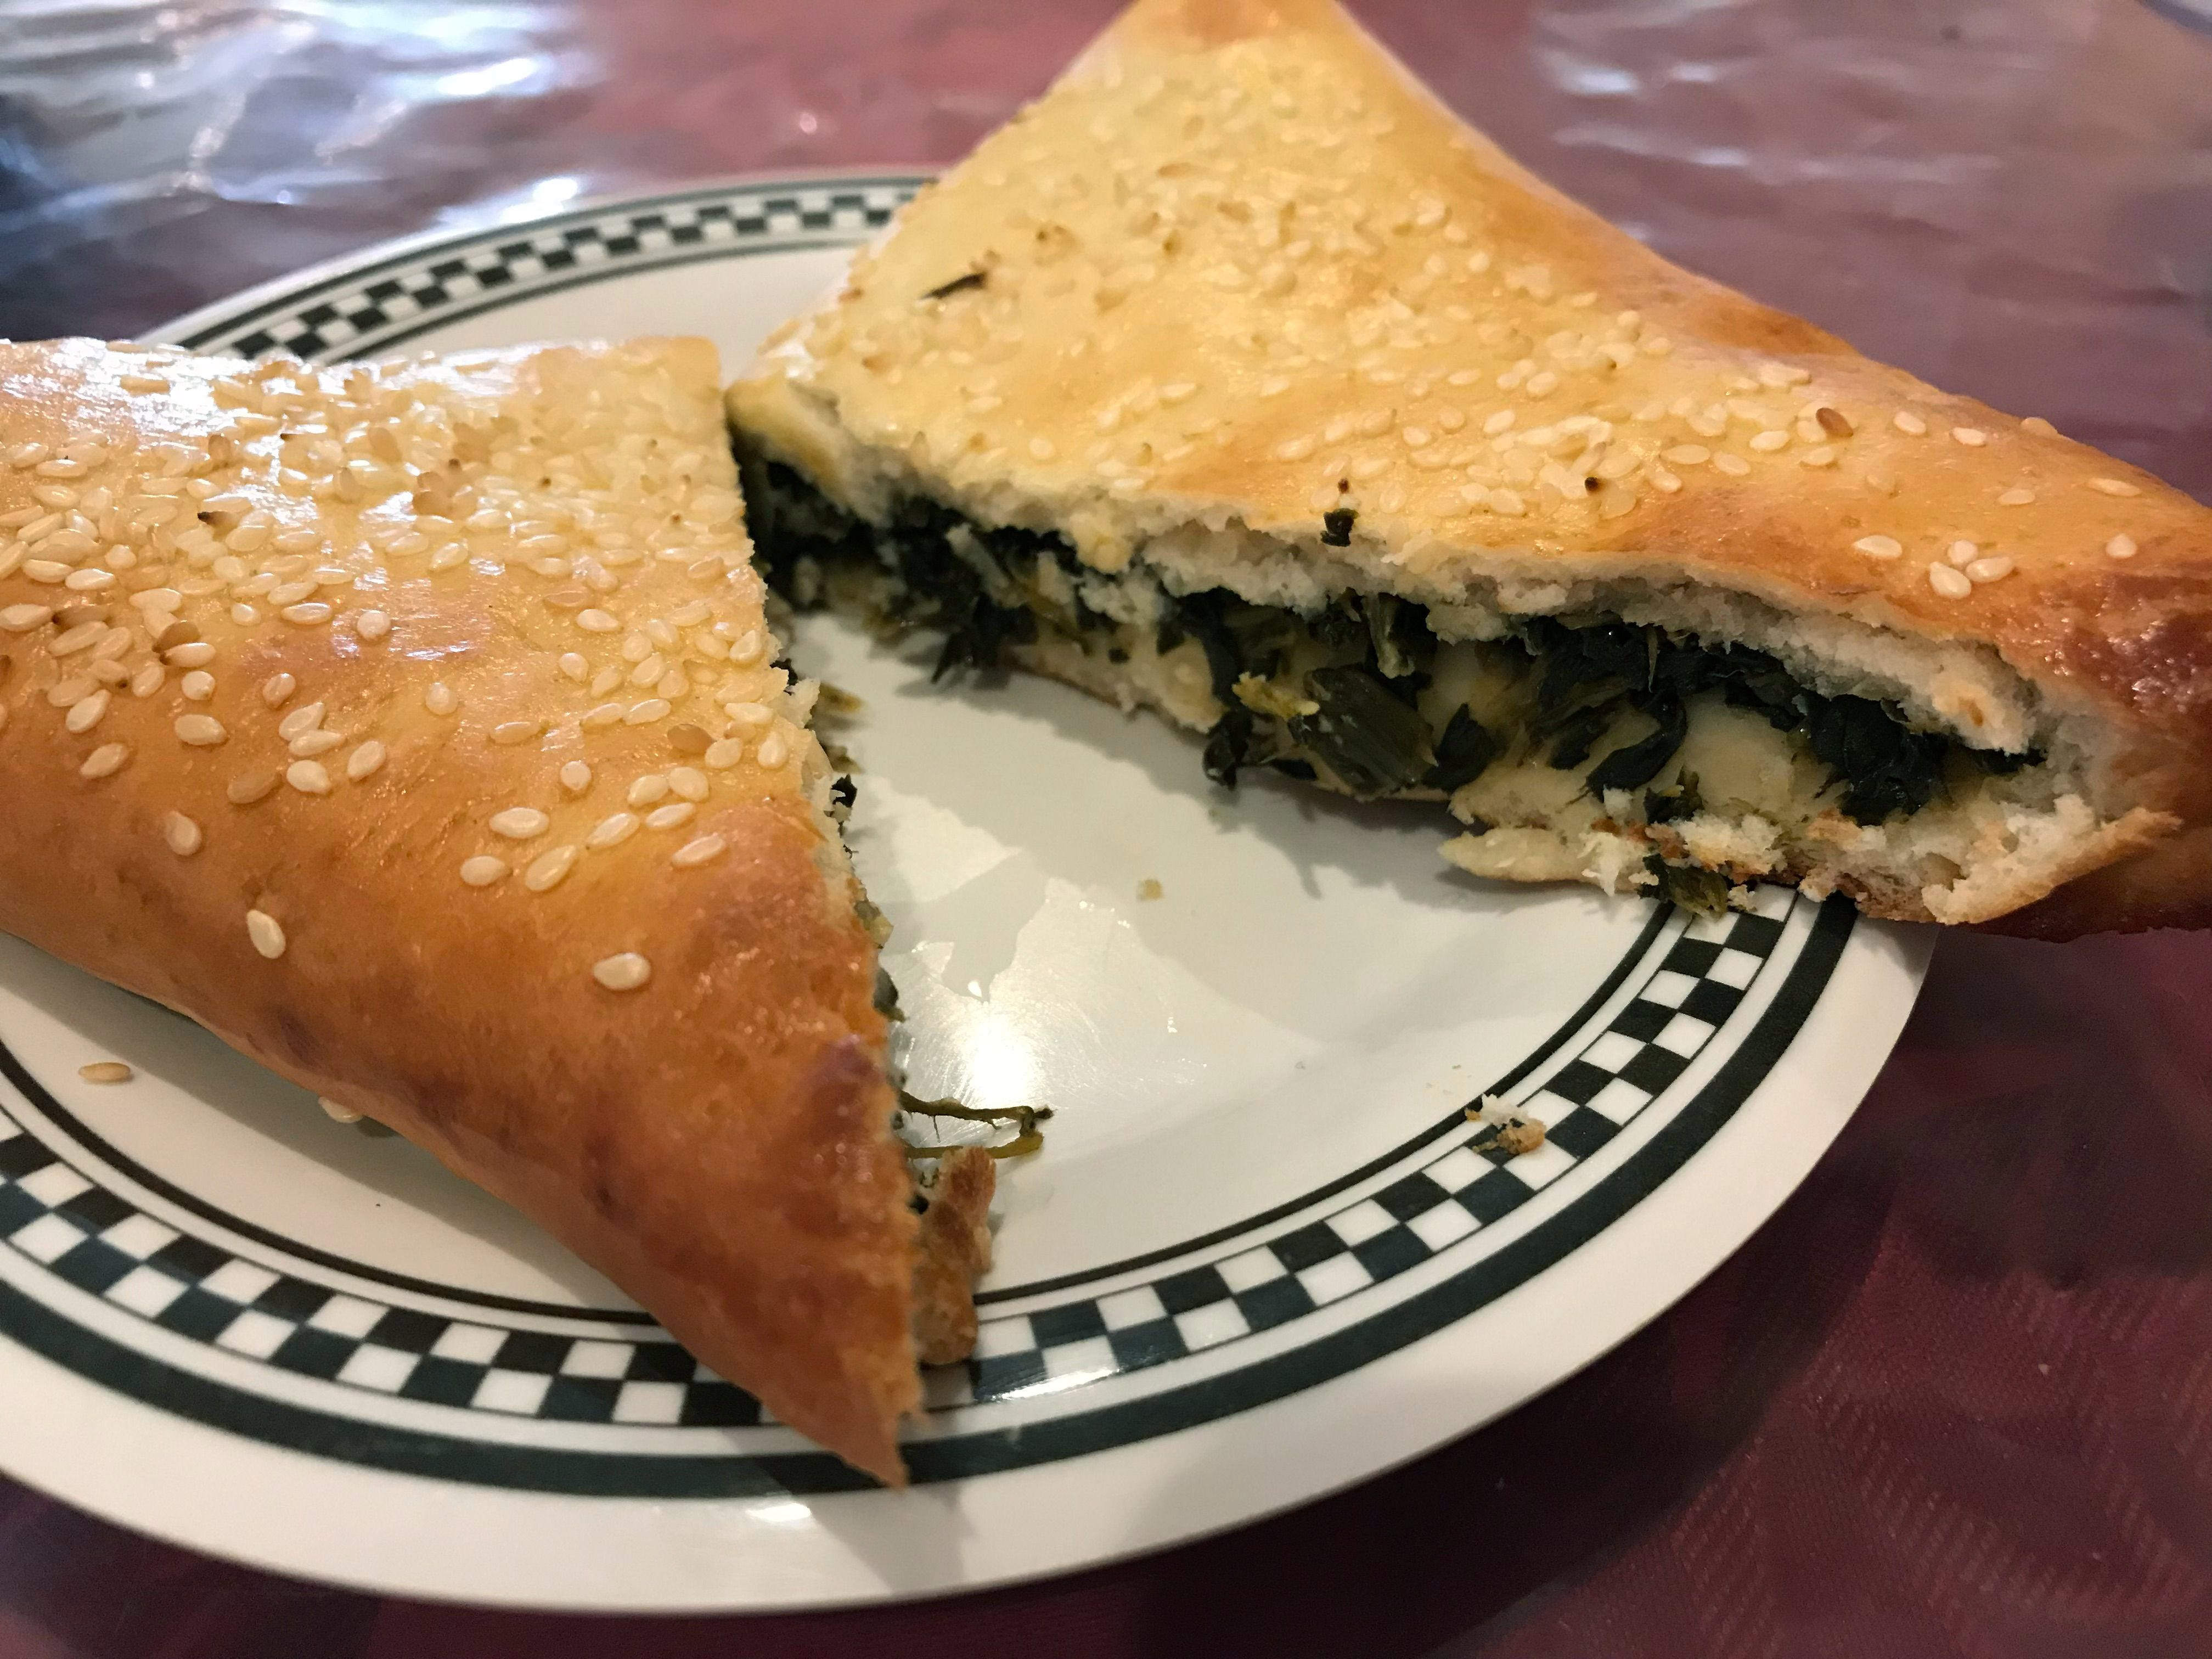 A large, triangular fatayer, a savory Syrian hand pie, is cut open to reveal the filling of lightly spicy fresh spinach at Damascus Gate, 807 W. Mitchell St.